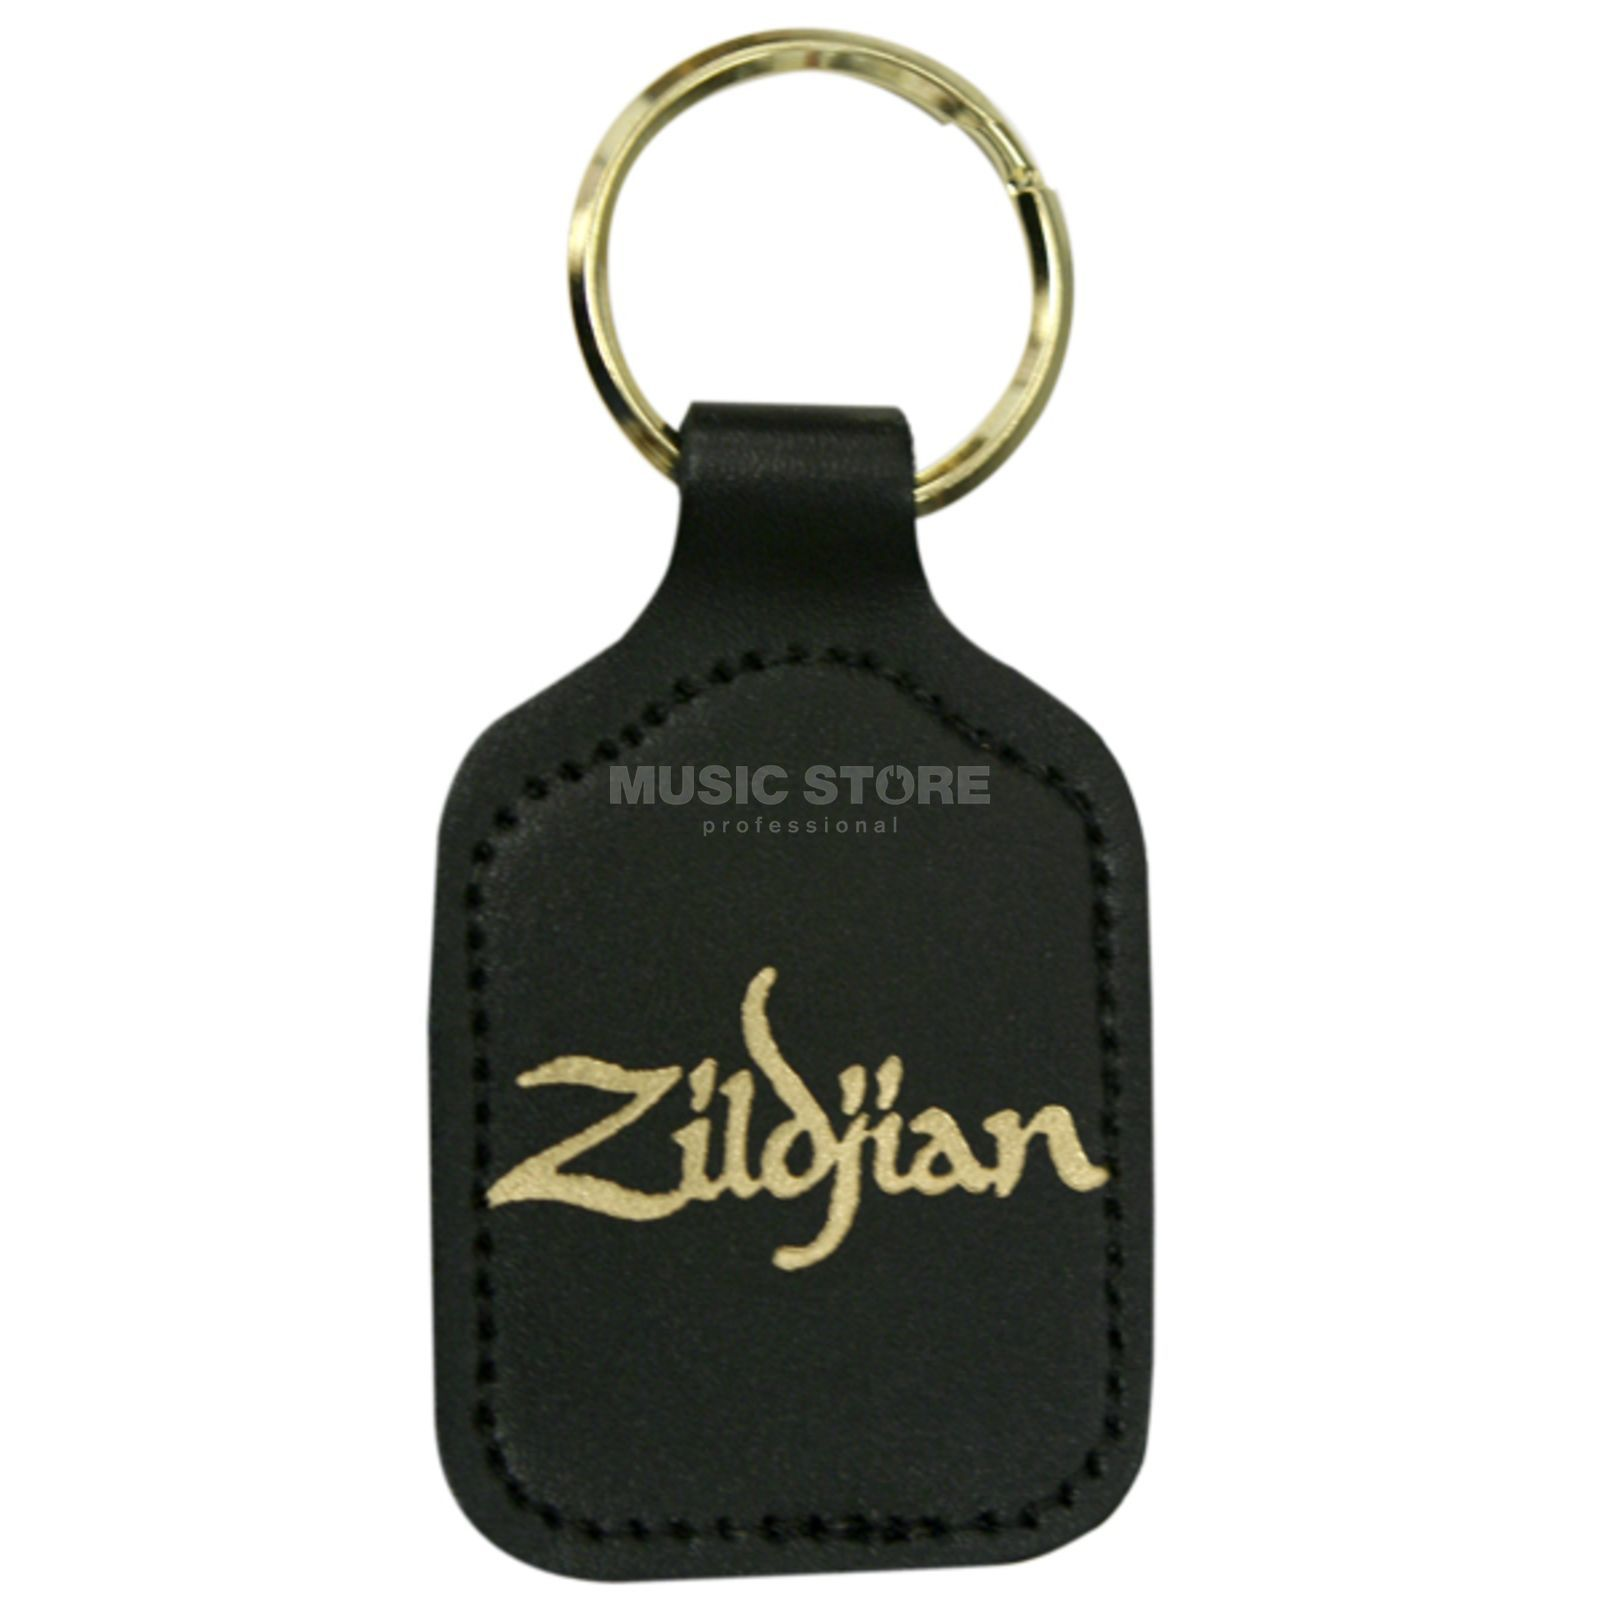 Zildjian Leather Key Ring  Изображение товара